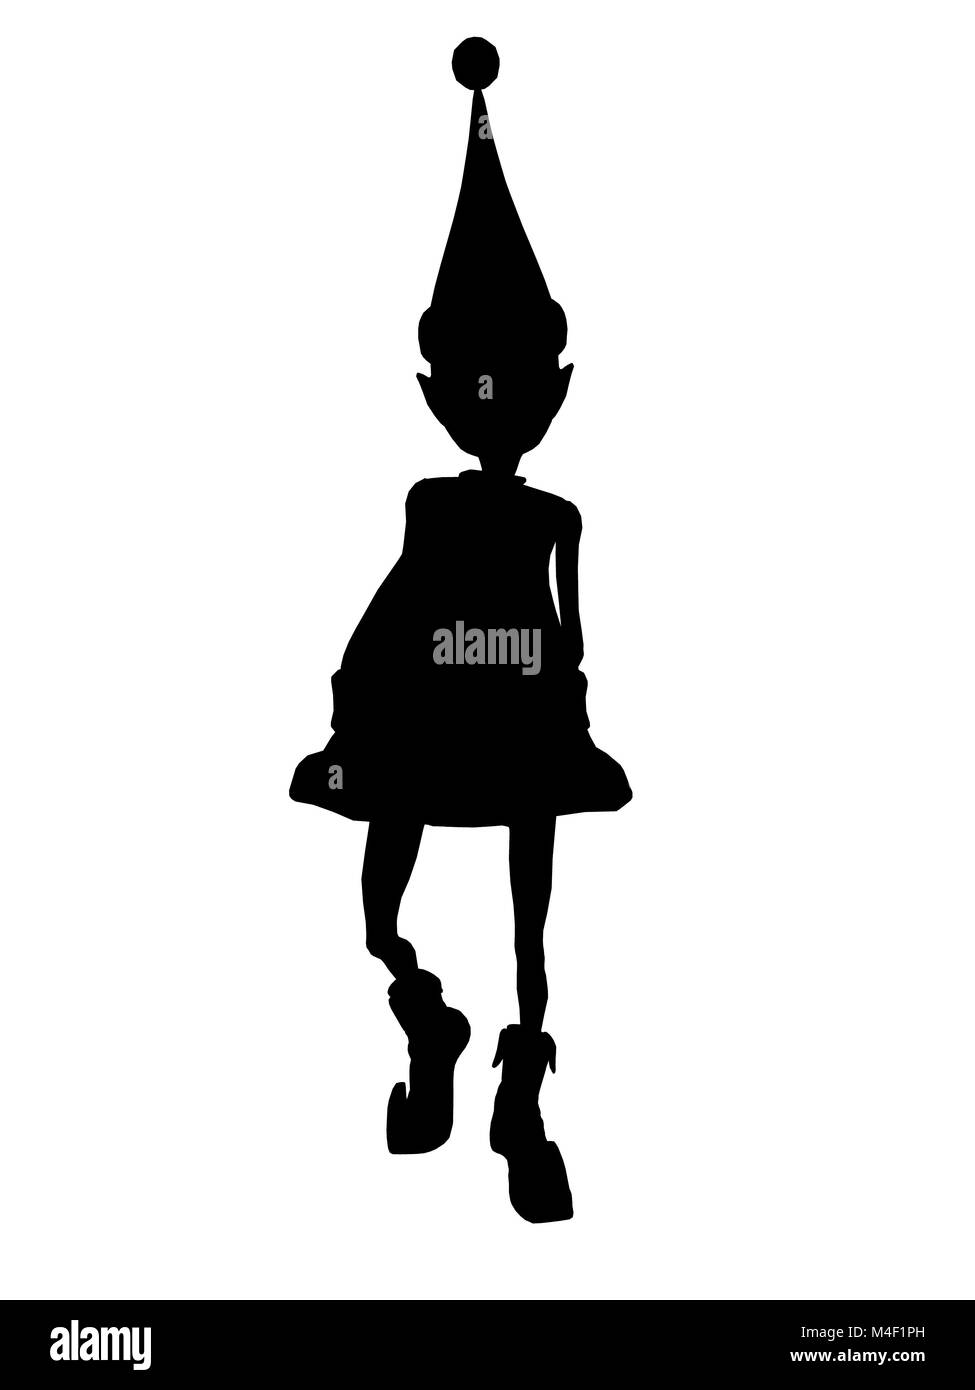 A  black christmas elf illustration silhouette on a white background - Stock Image